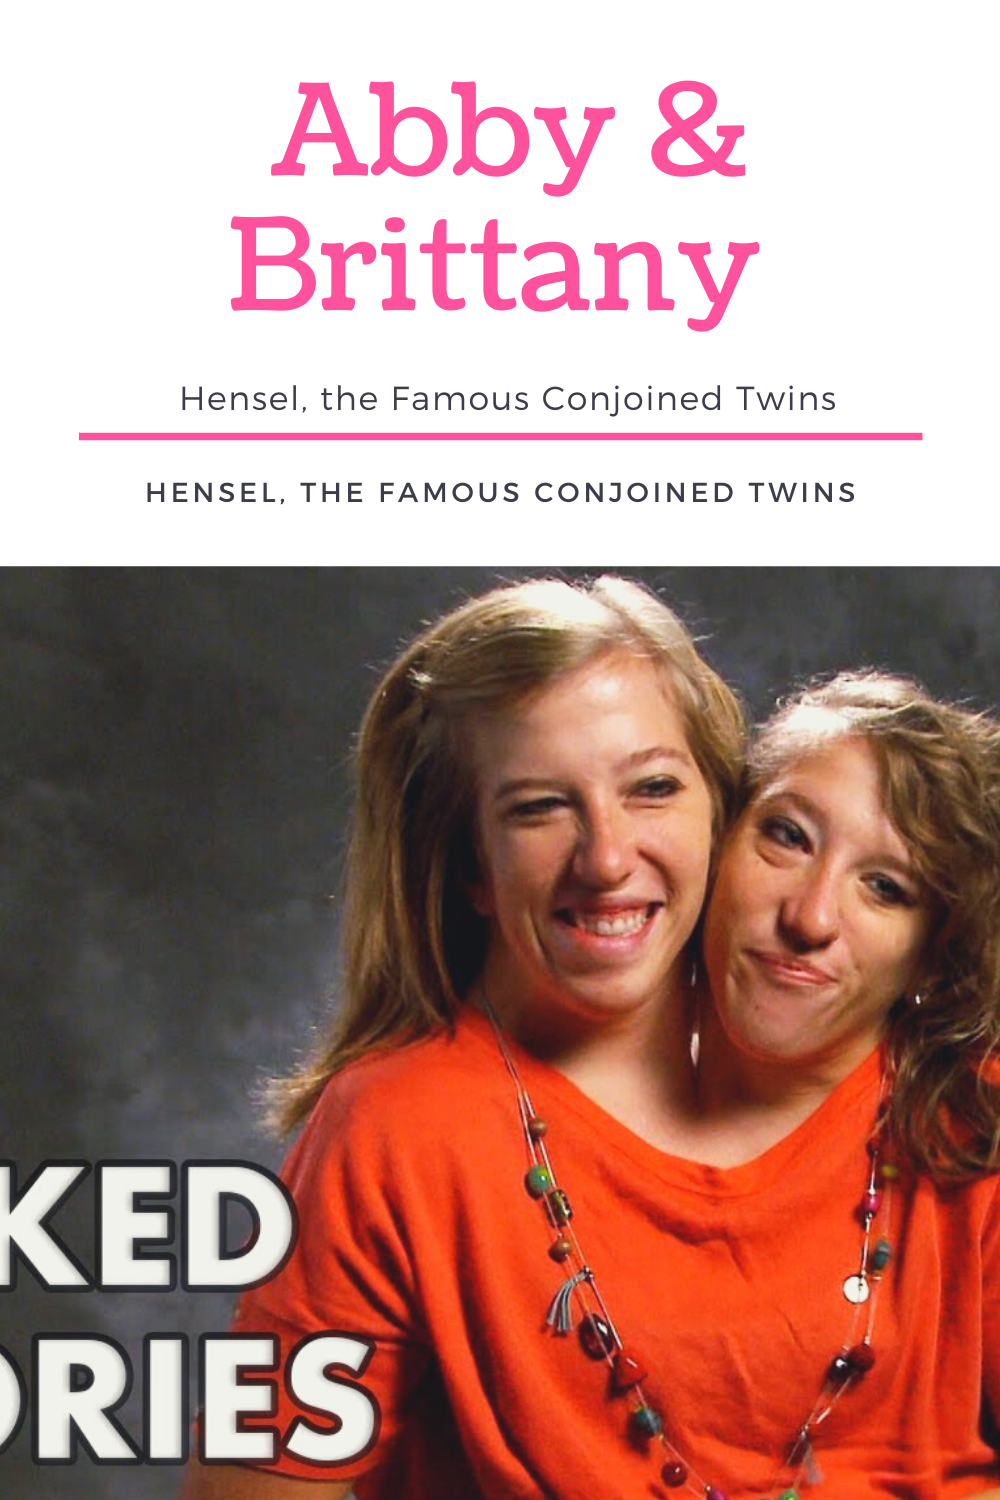 Abby Brittany Hensel The Famous Conjoined Twins In 2020 Conjoined Twins Brittany Famous